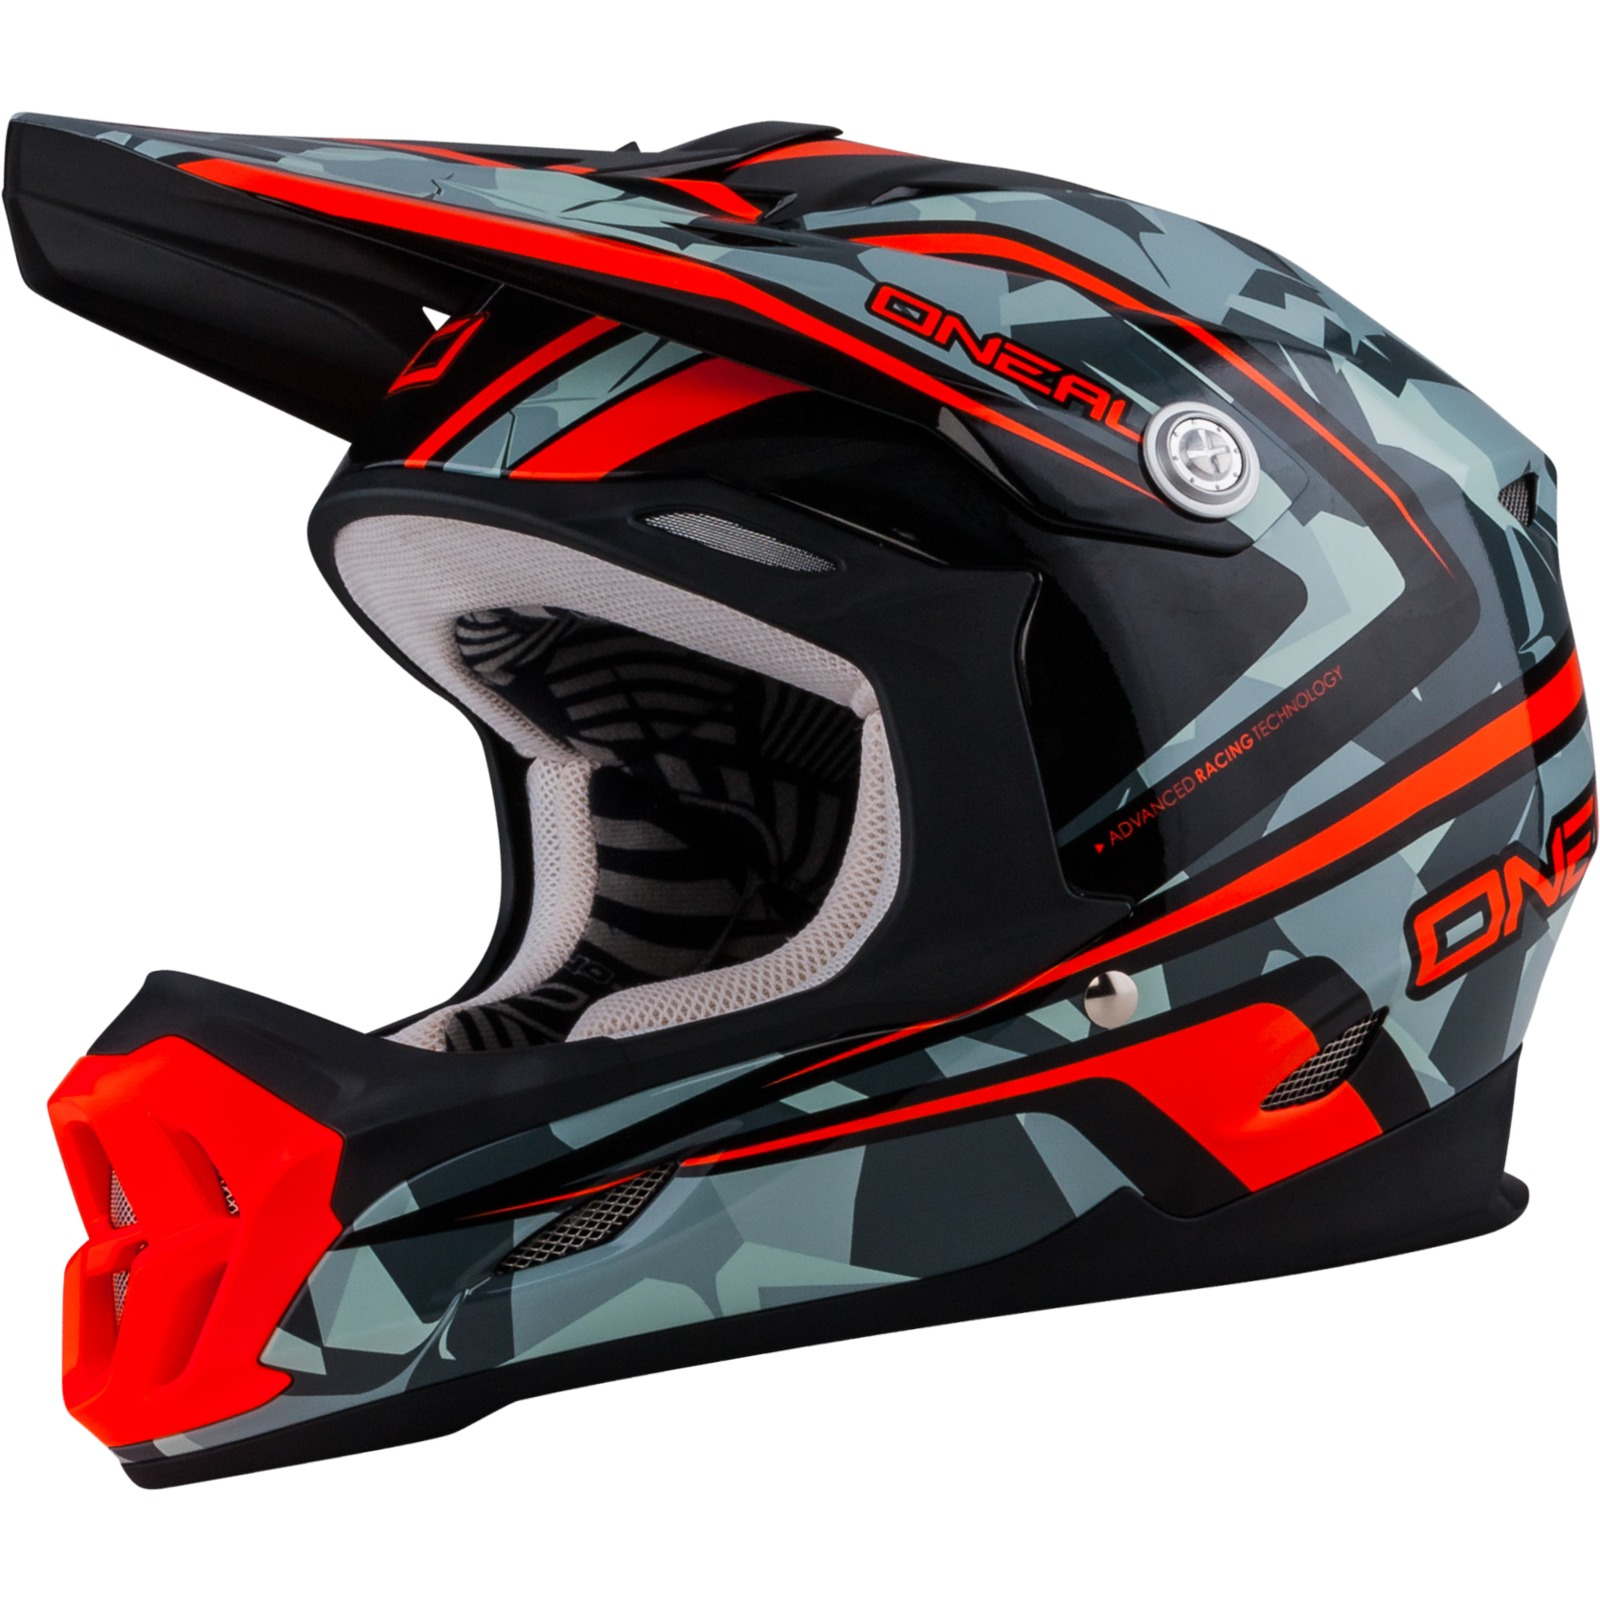 oneal 7 series camo grey orange motocross helmet atv moto. Black Bedroom Furniture Sets. Home Design Ideas